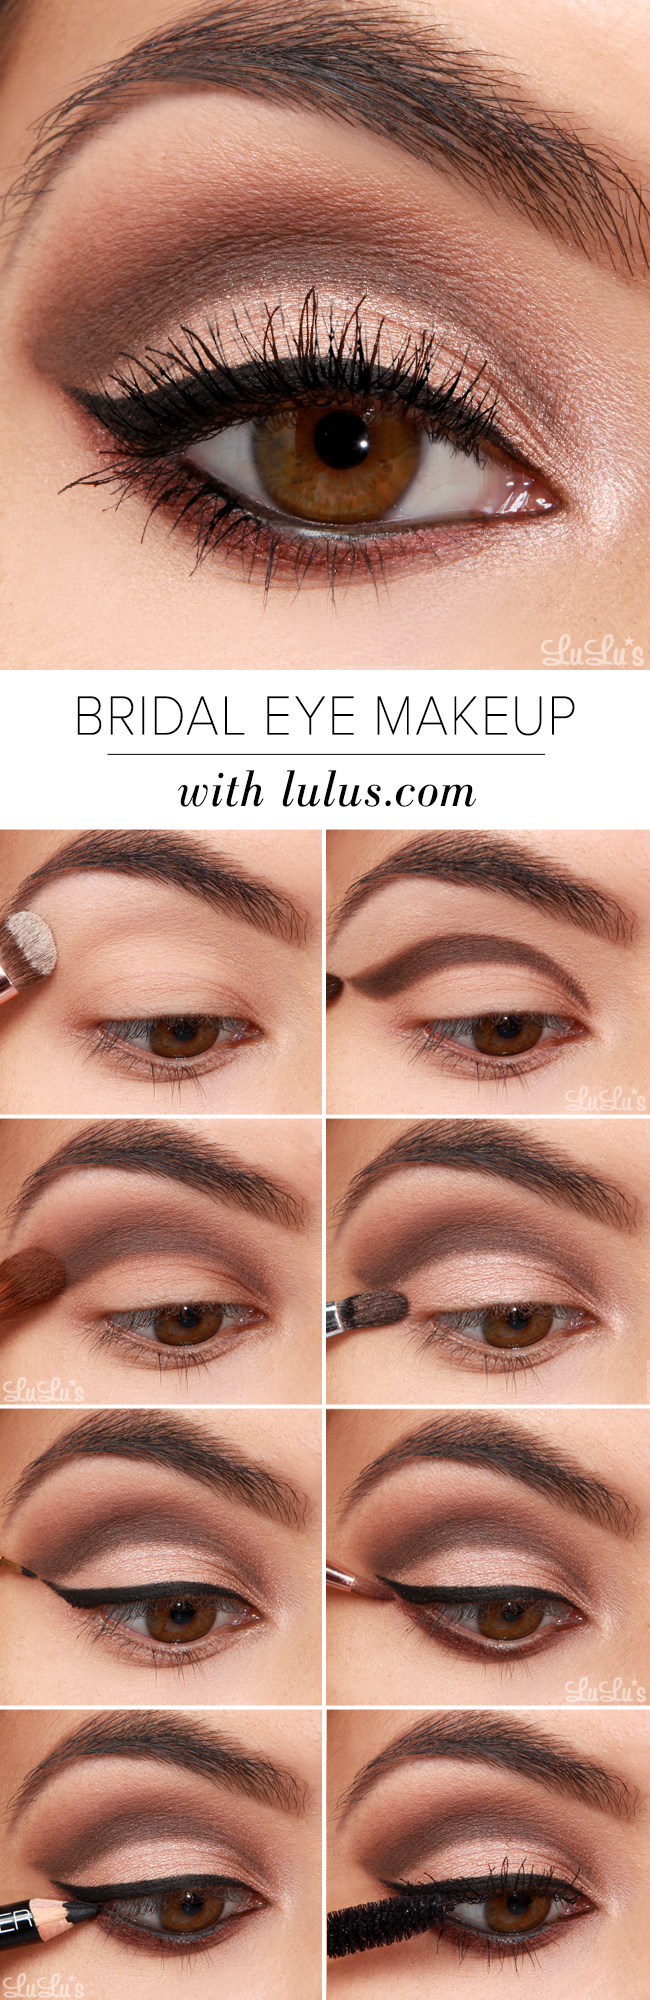 Lulus How To Bridal Eye Makeup Tutorial Lulus Fashion Blog